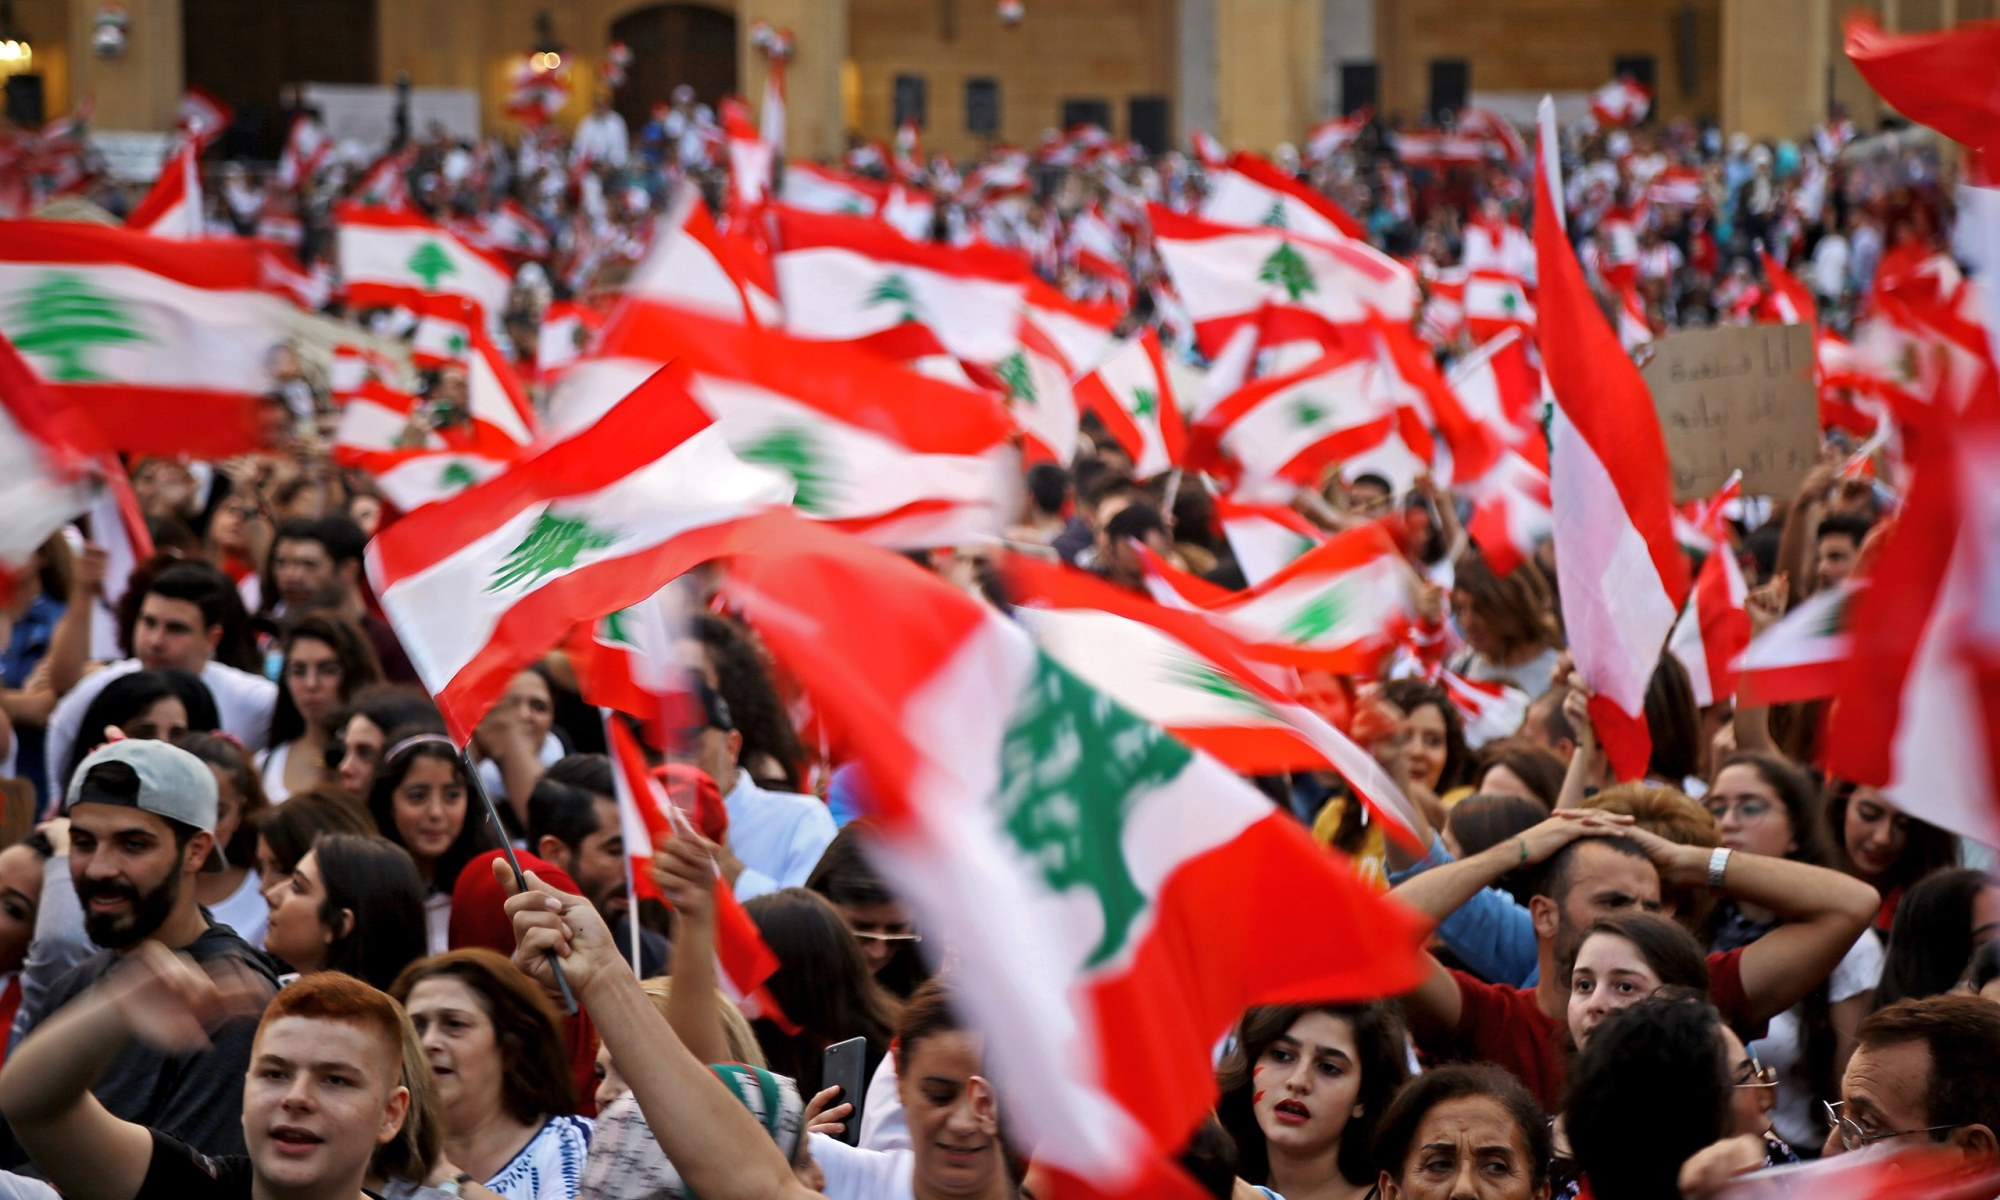 People waving Lebanese flags.